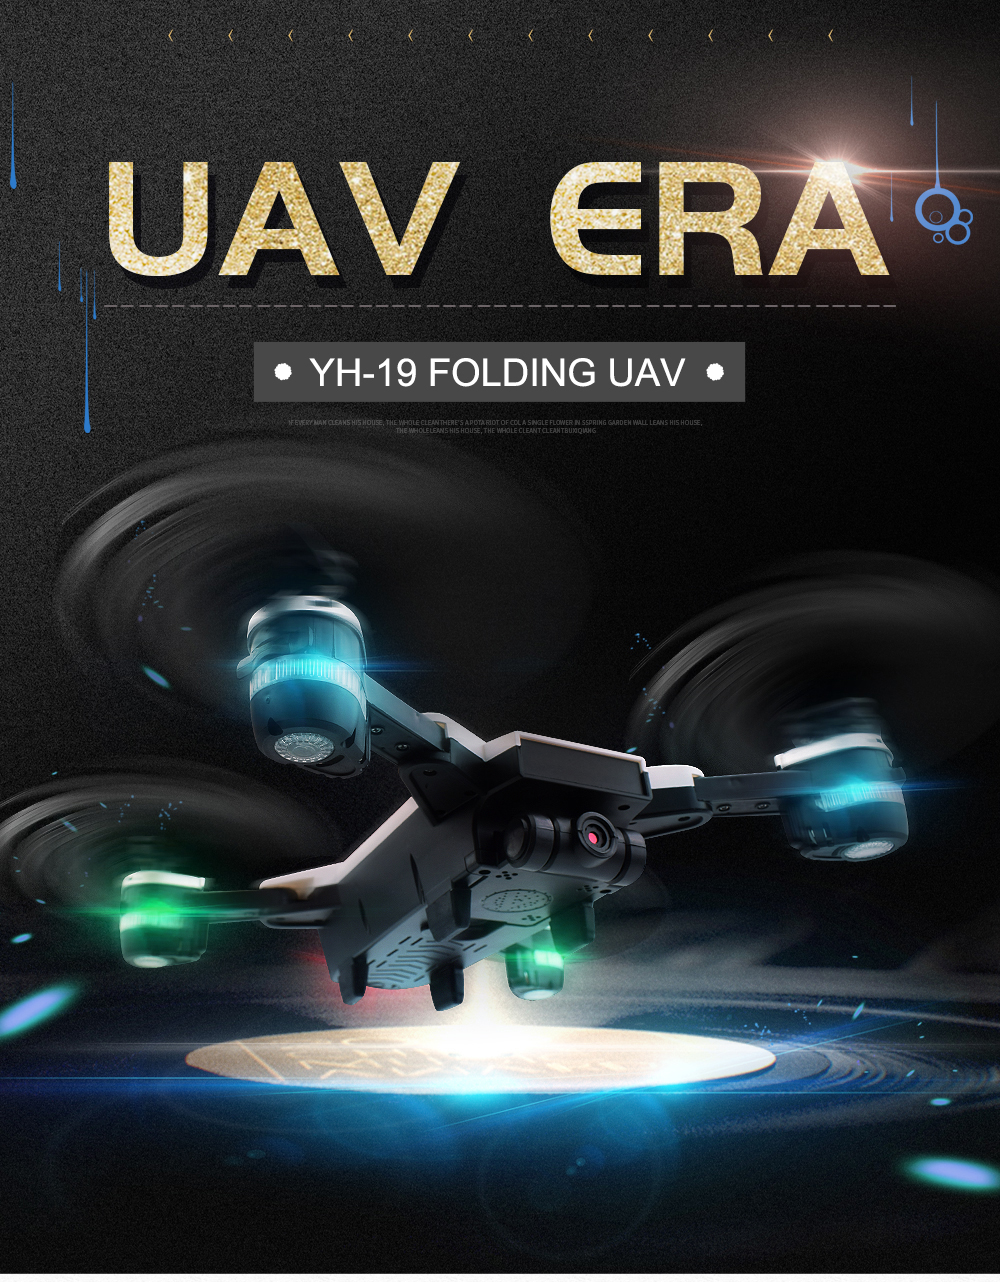 1.New 2.4Ghz 4ch foldable FPV rc drone with 2MP wide angle wifi camera